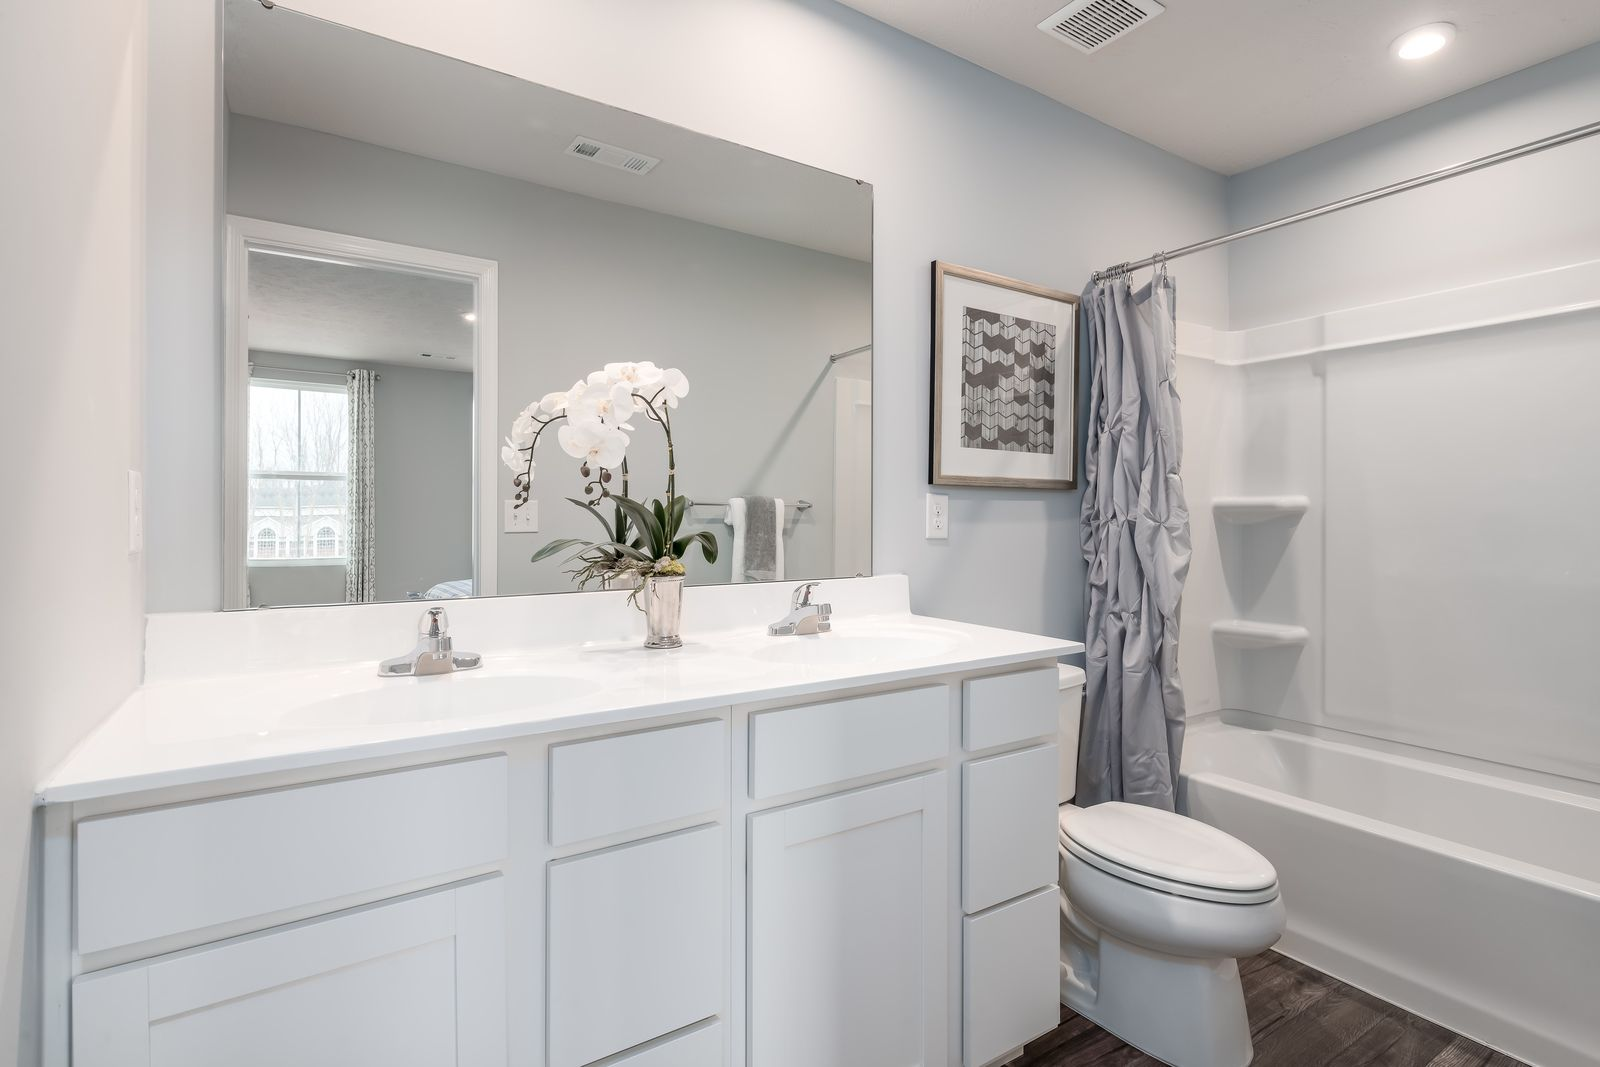 Bathroom featured in the Birch By Ryan Homes in Cleveland, OH